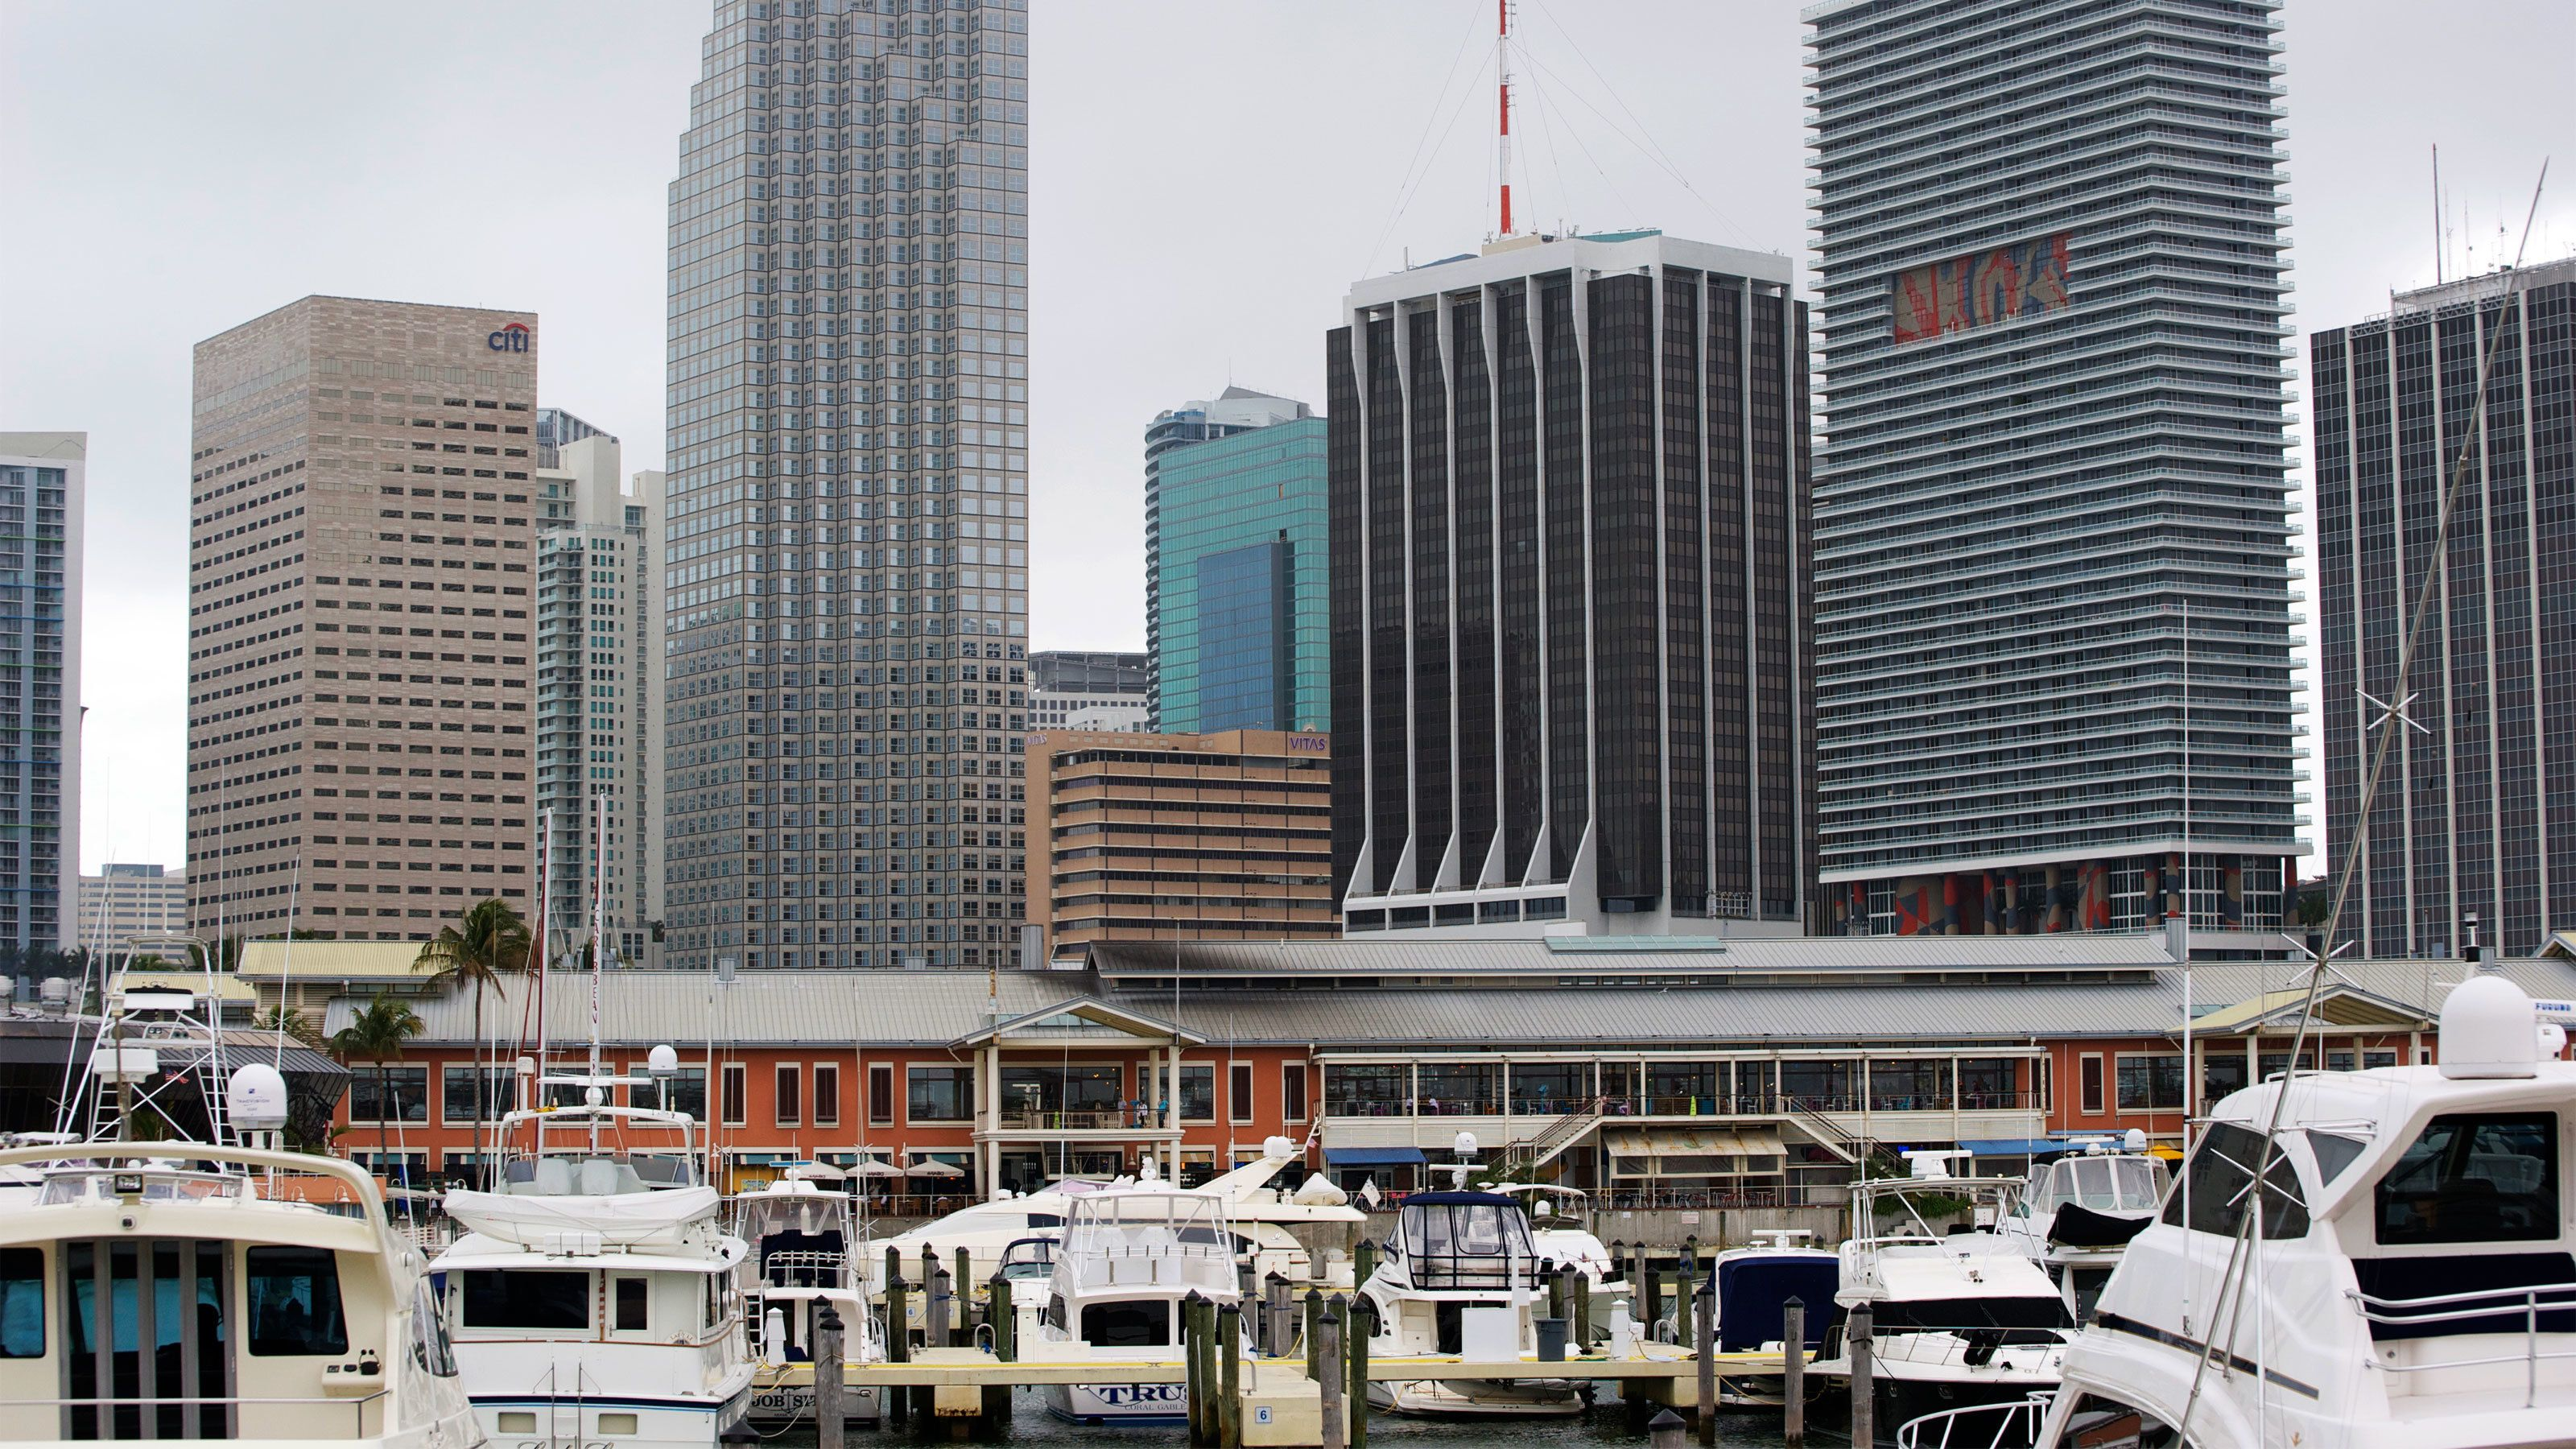 Marina with tall buildings in background in Orlando.